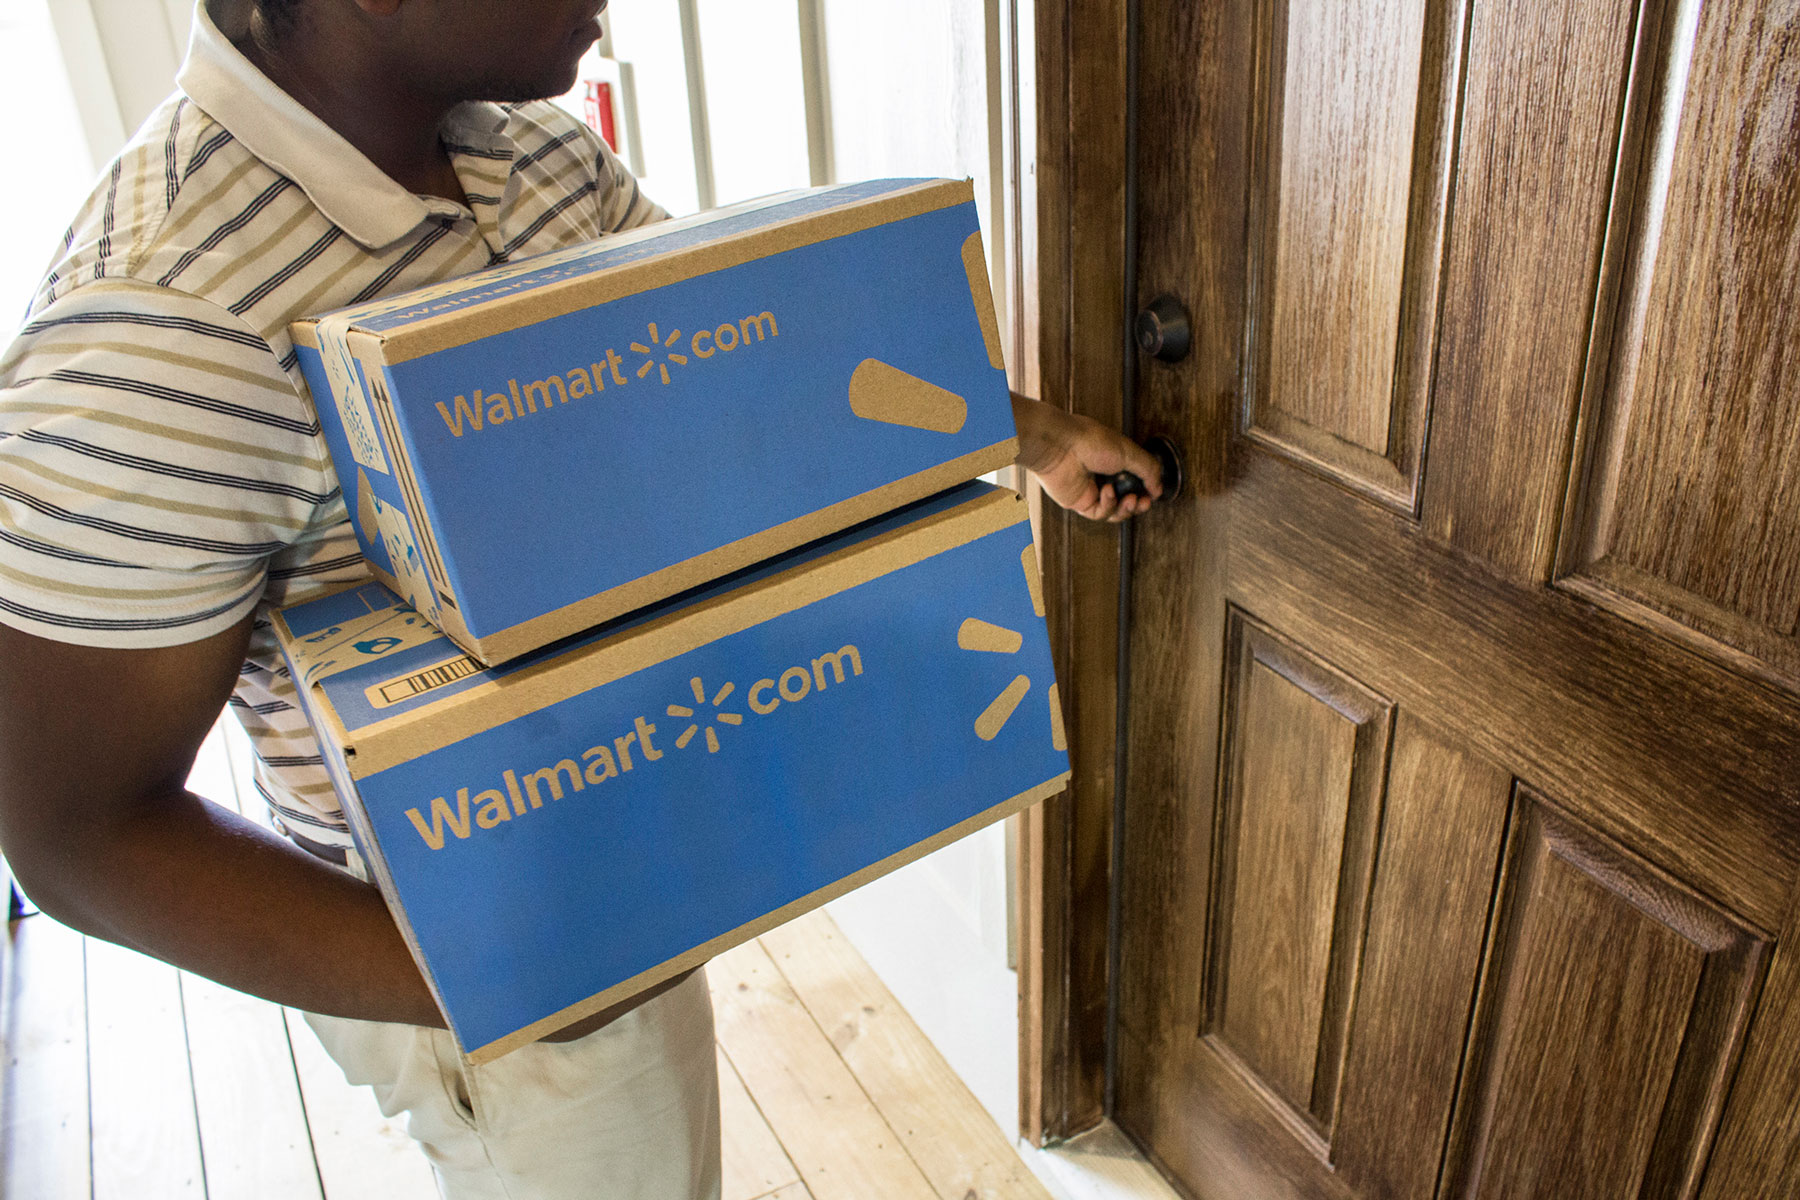 Walmart com best sellers 2018 - shipping boxes